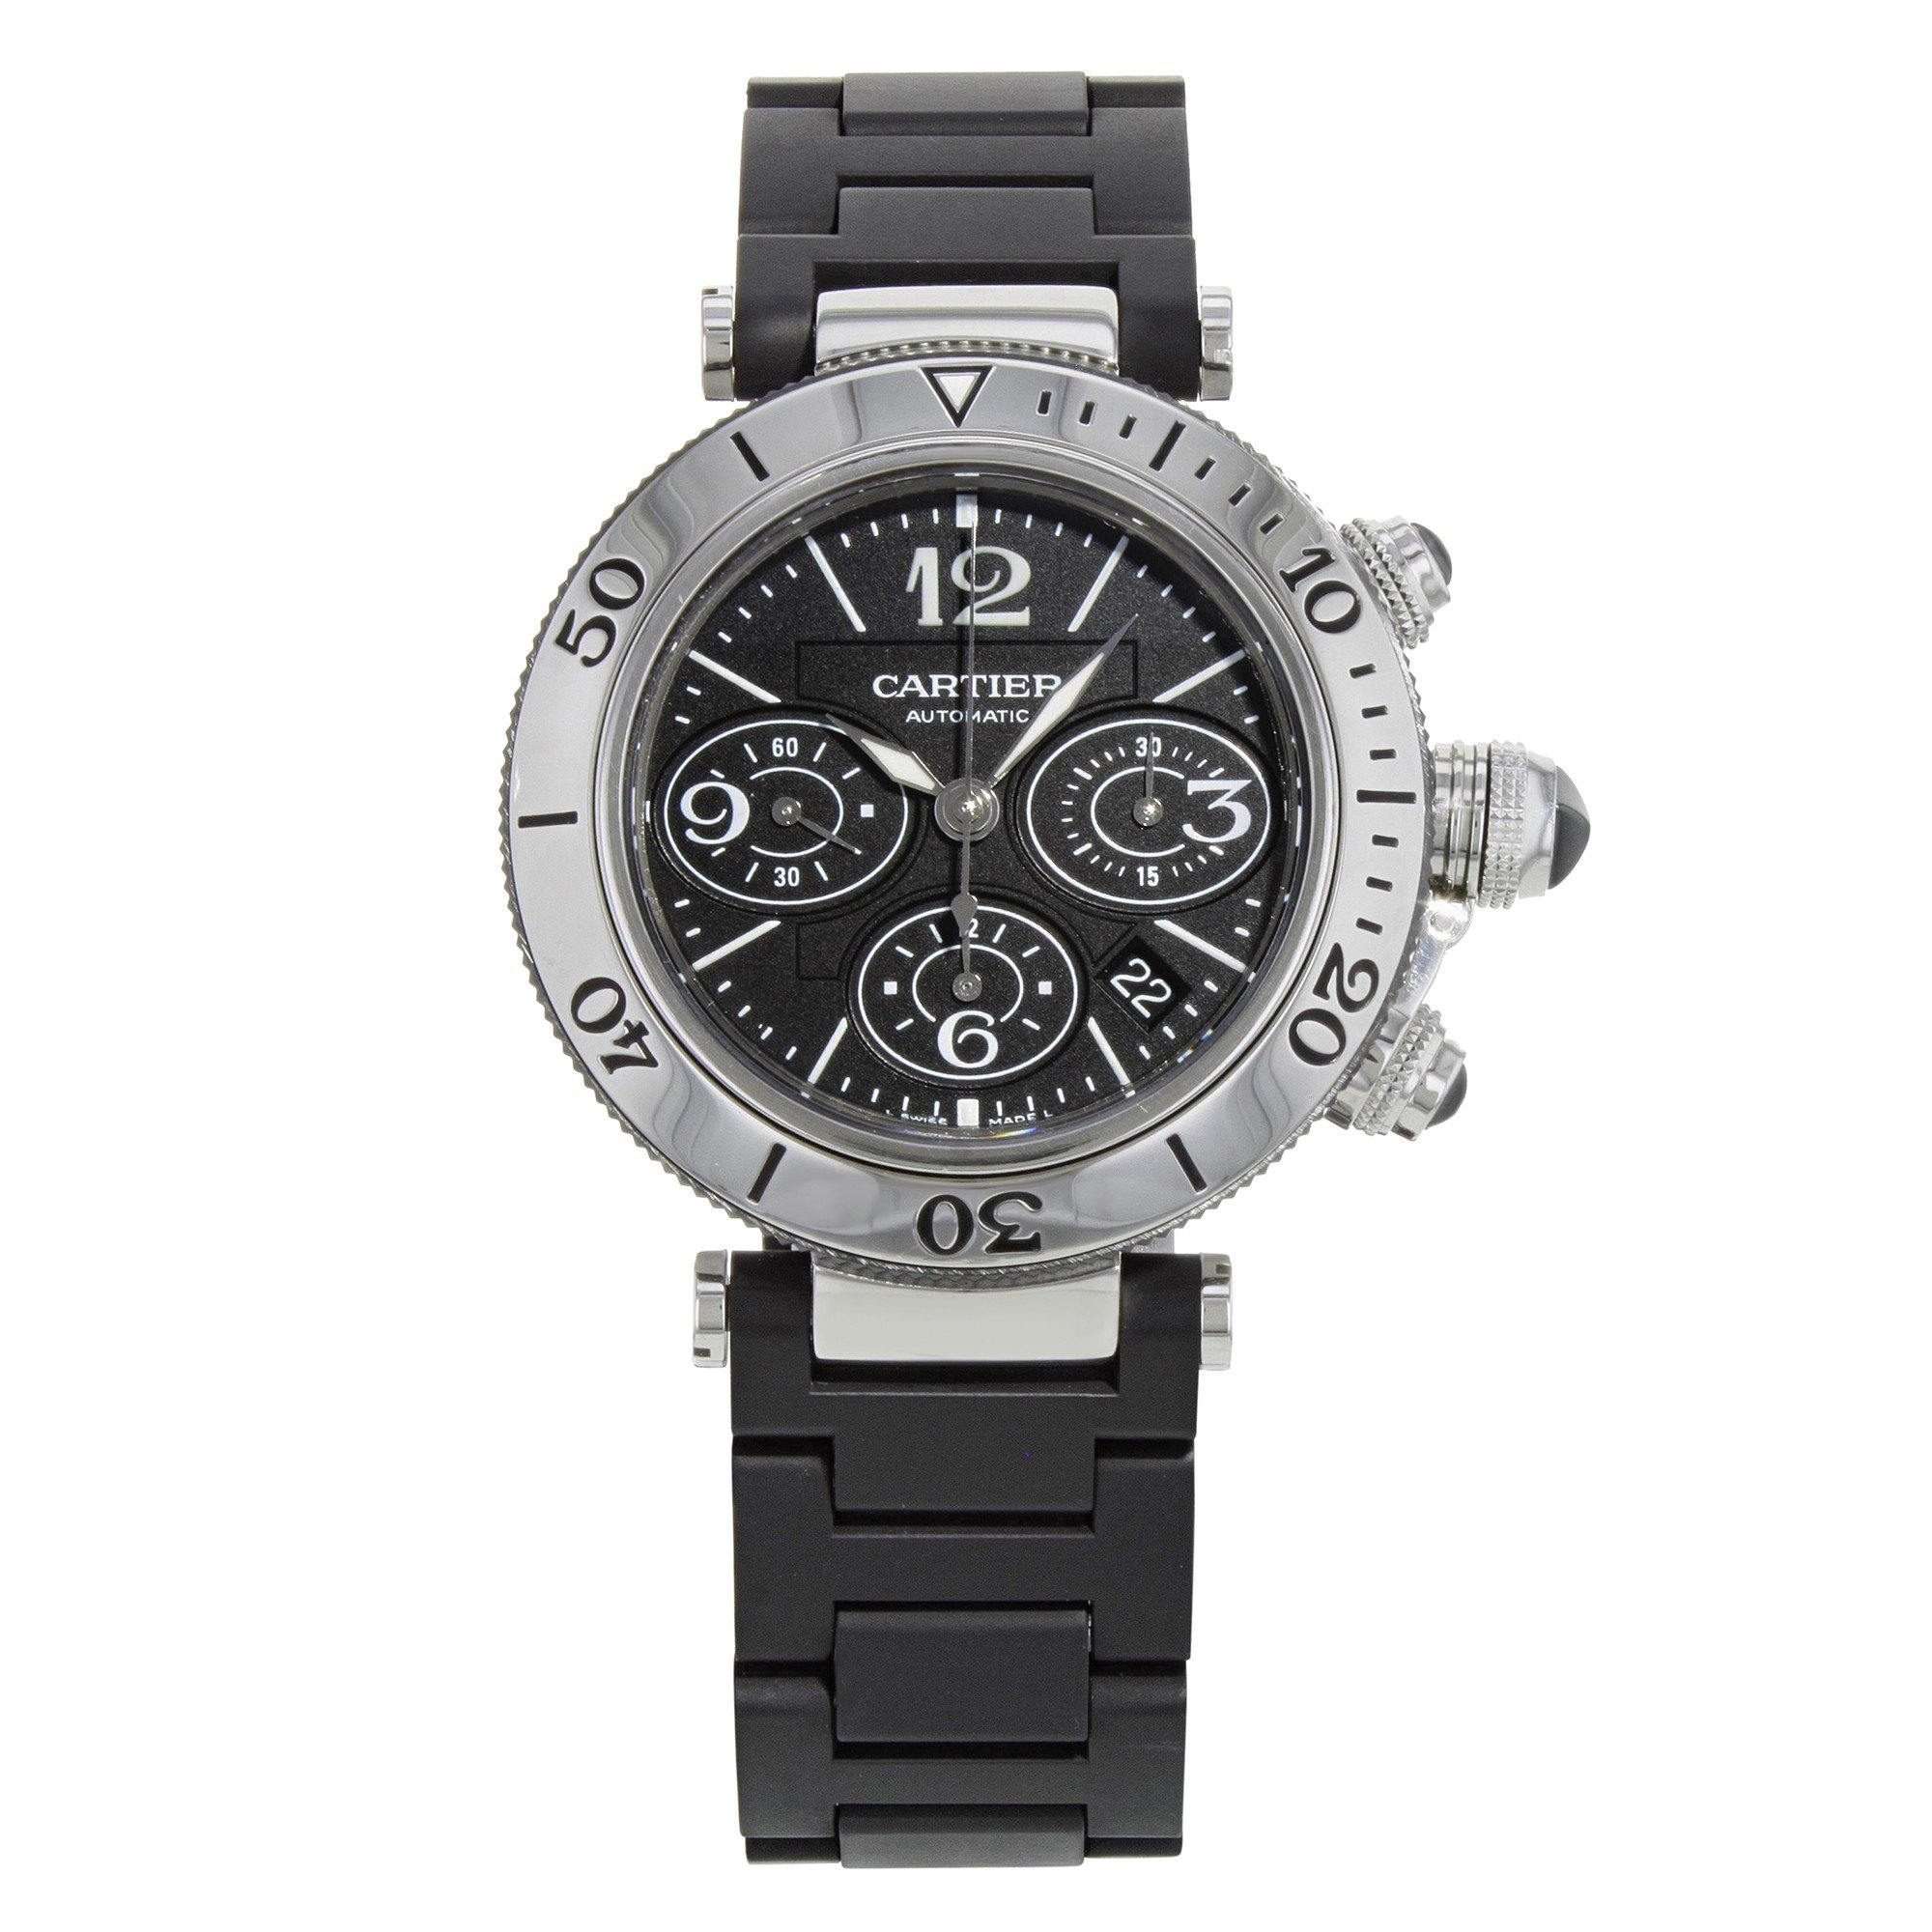 Cartier Pasha Seatimer W31088U2 Stainless Steel Automatic Men's Watch(Certified Pre-owned) by Cartier (Image #1)